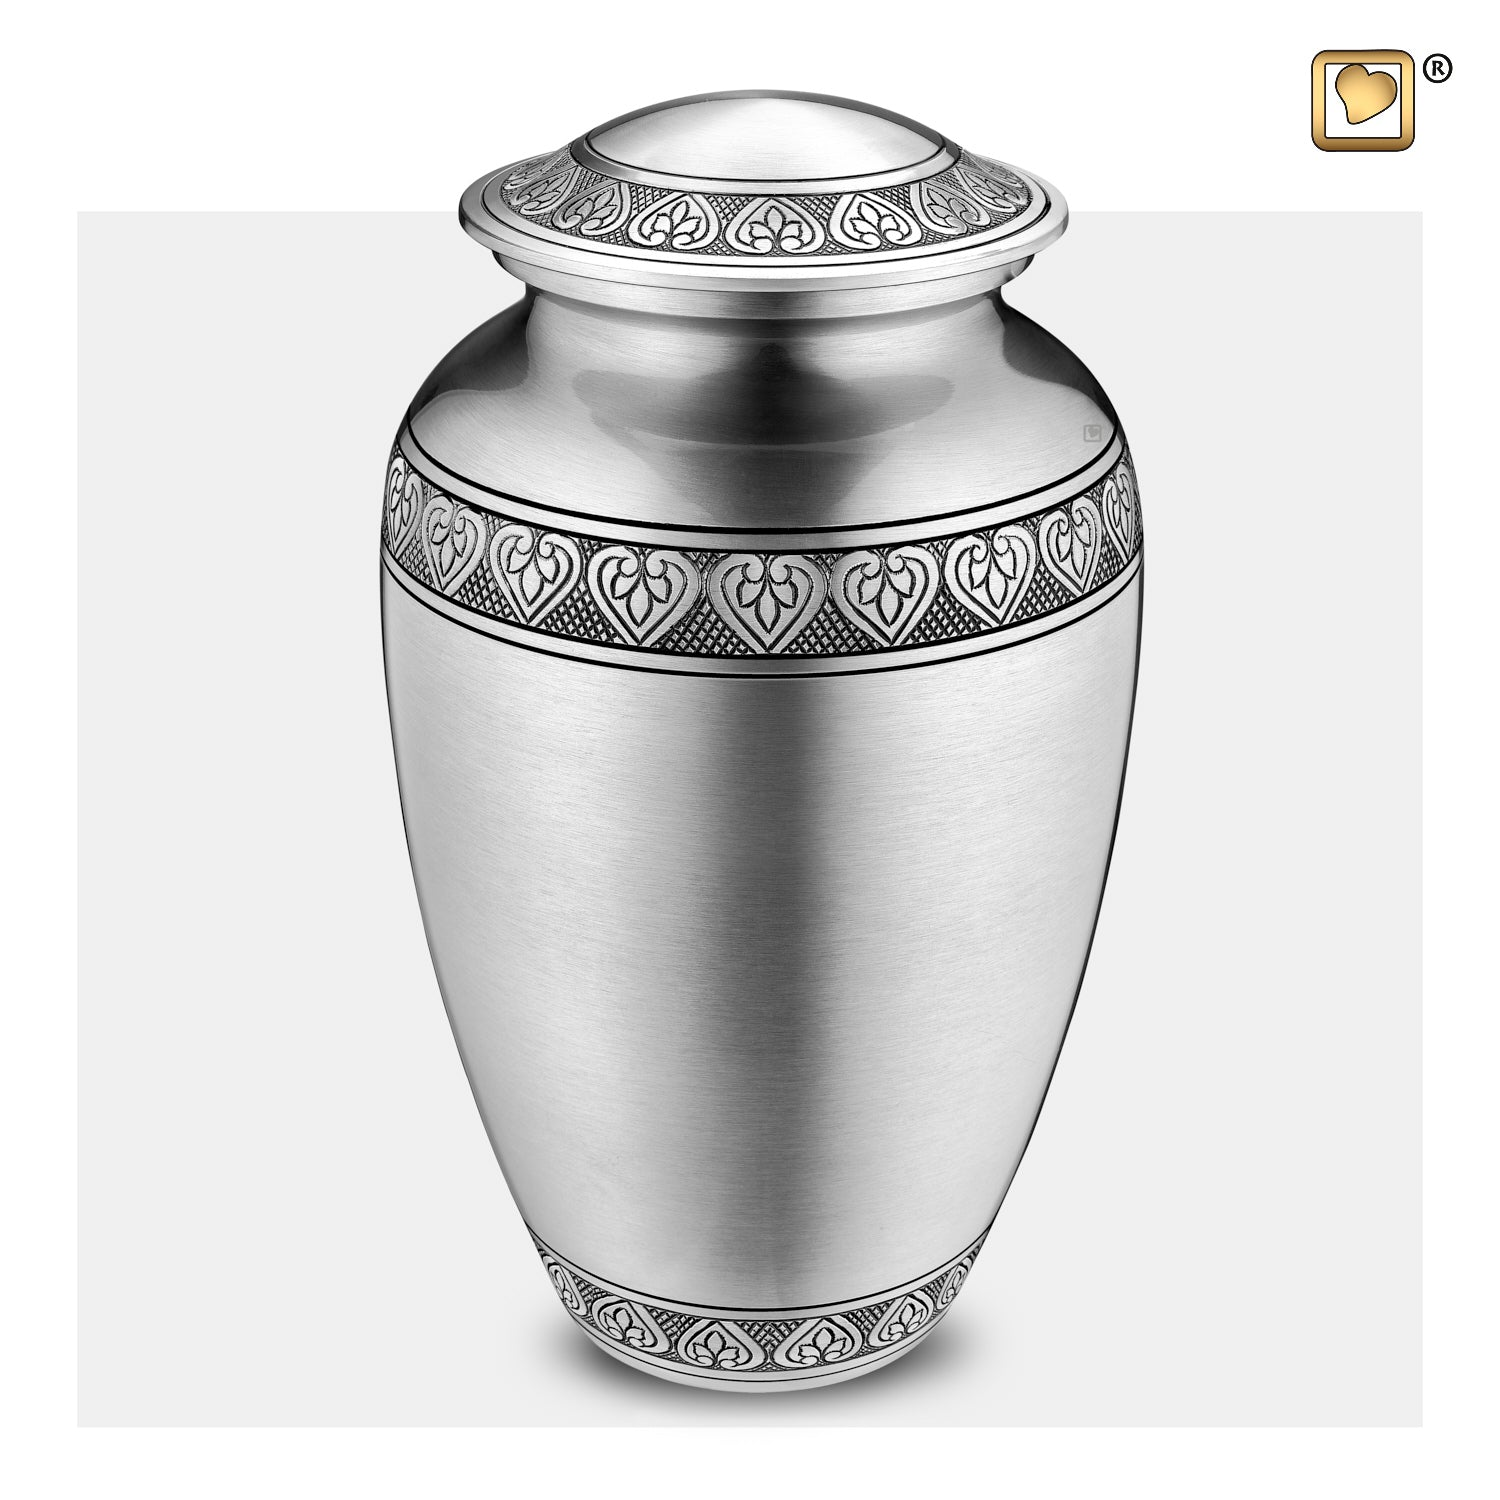 A210 ADULT CLASSIC™ PEWTER CREMATION URN